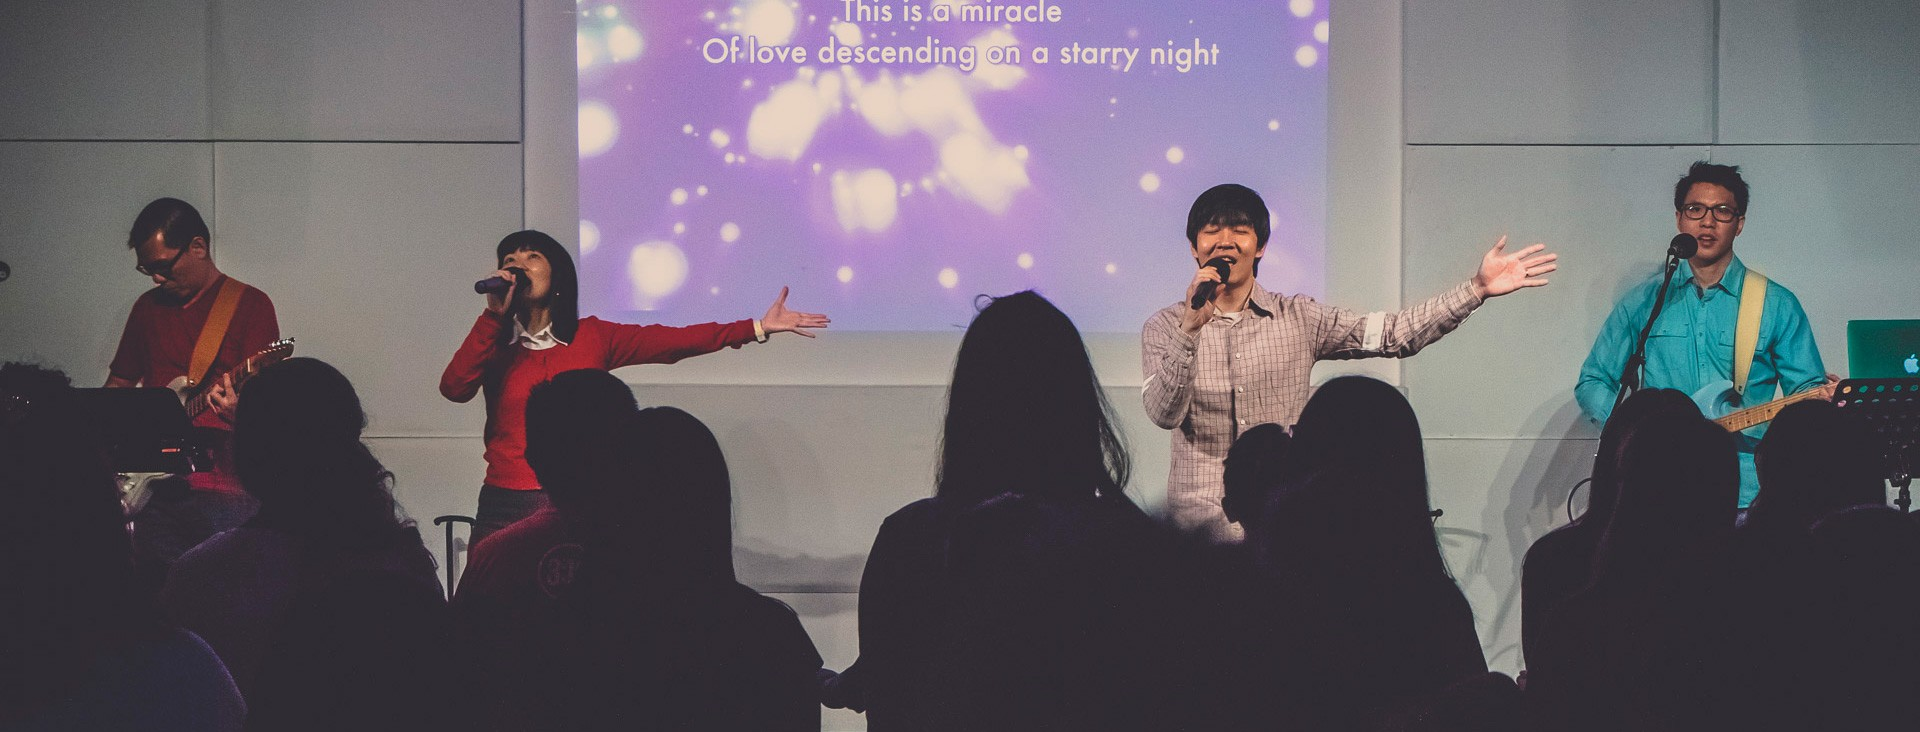 3:16 Church Singapore: This Is A Miracle